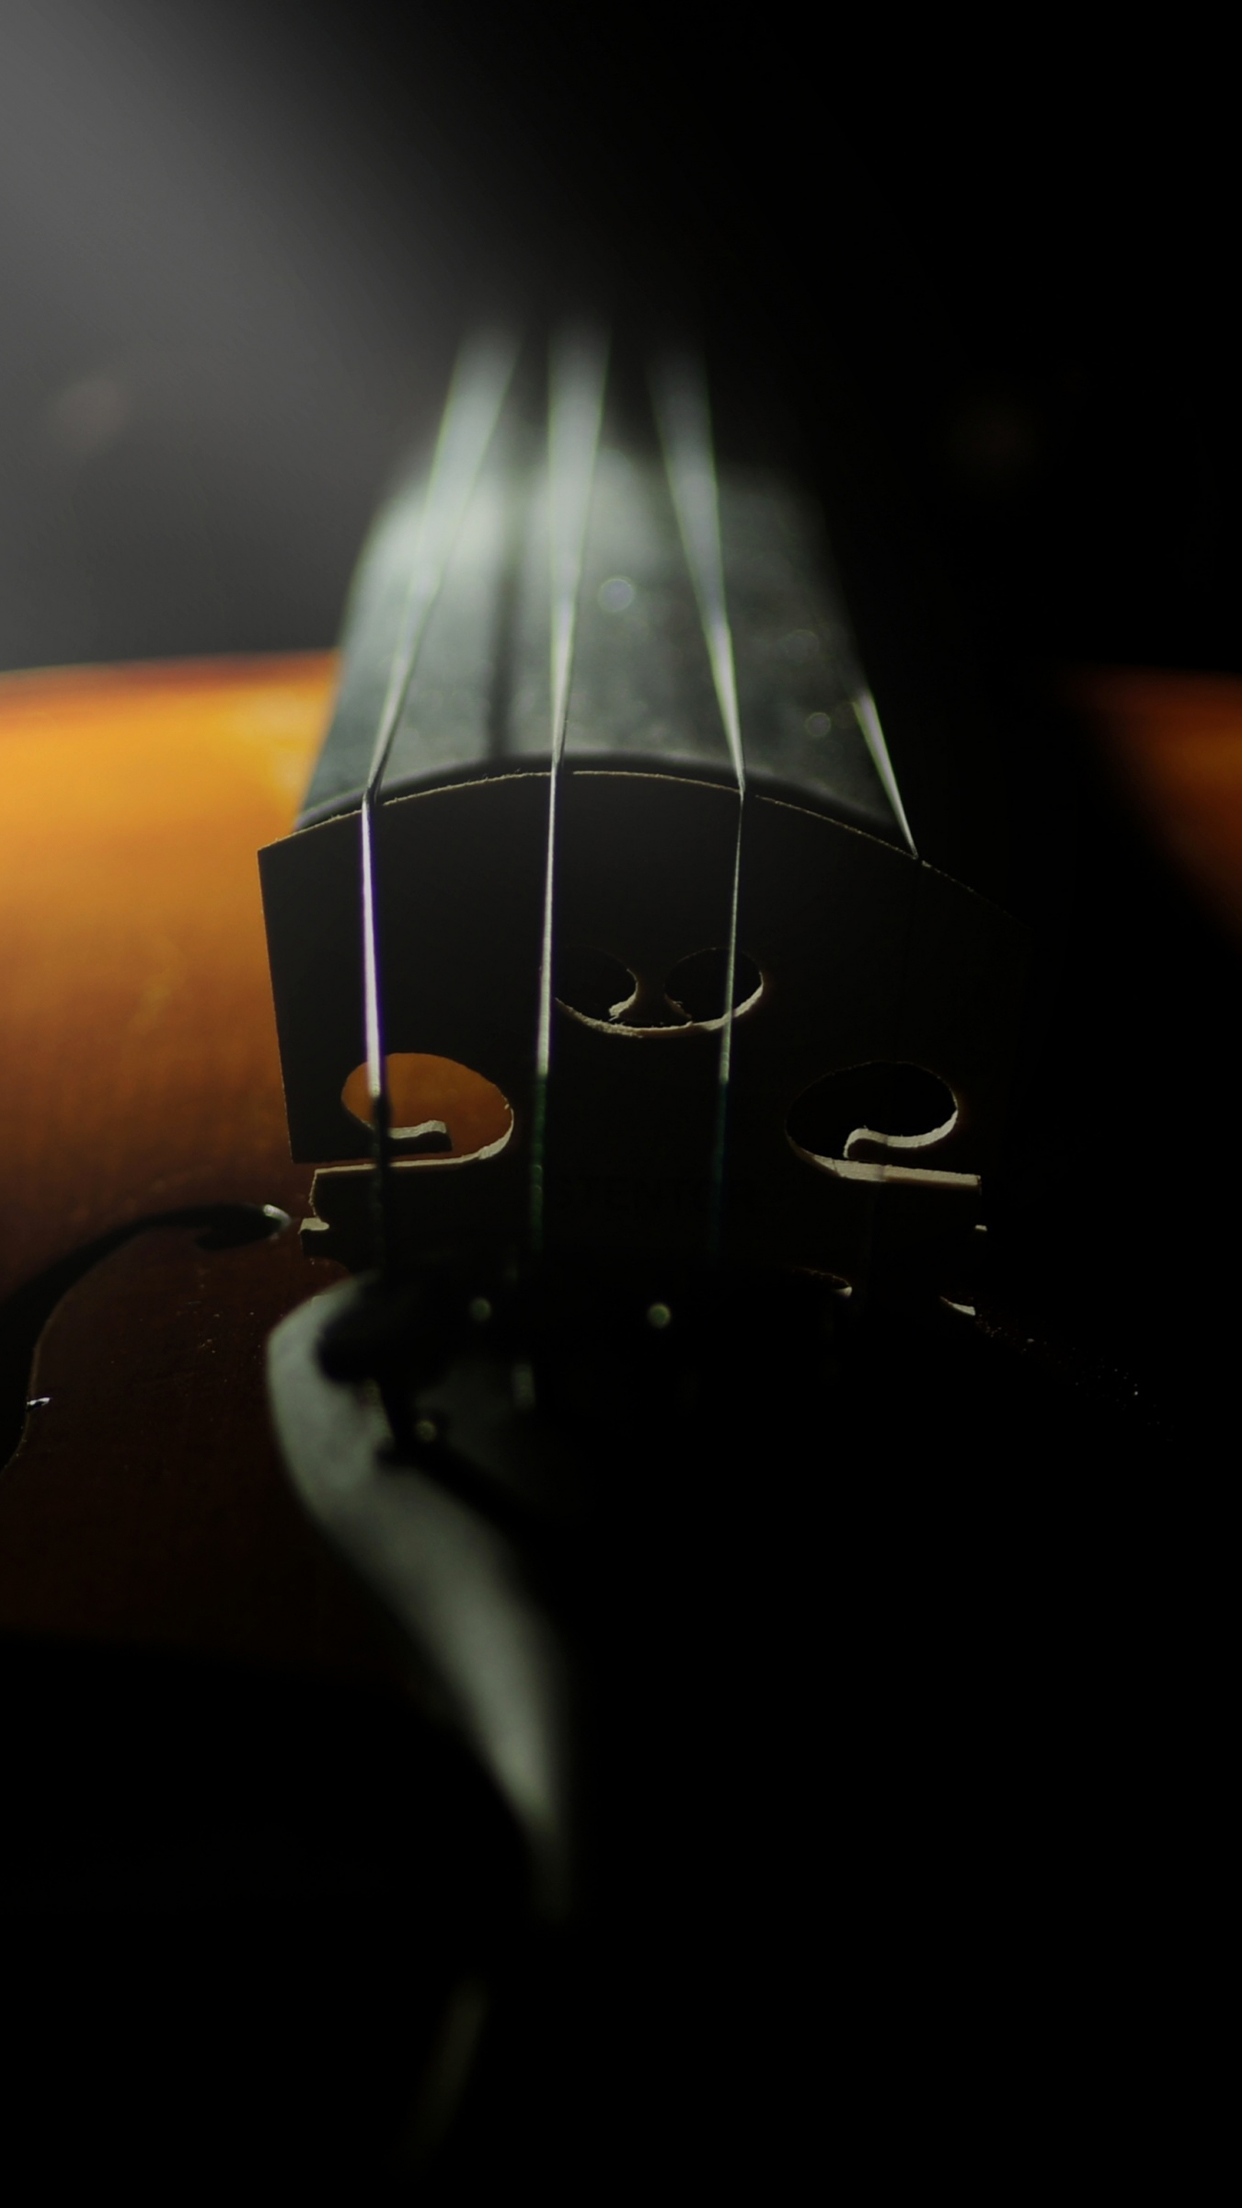 Violin Wallpaper for iPhone 11, Pro Max, X, 8, 7, 6 - Free ...